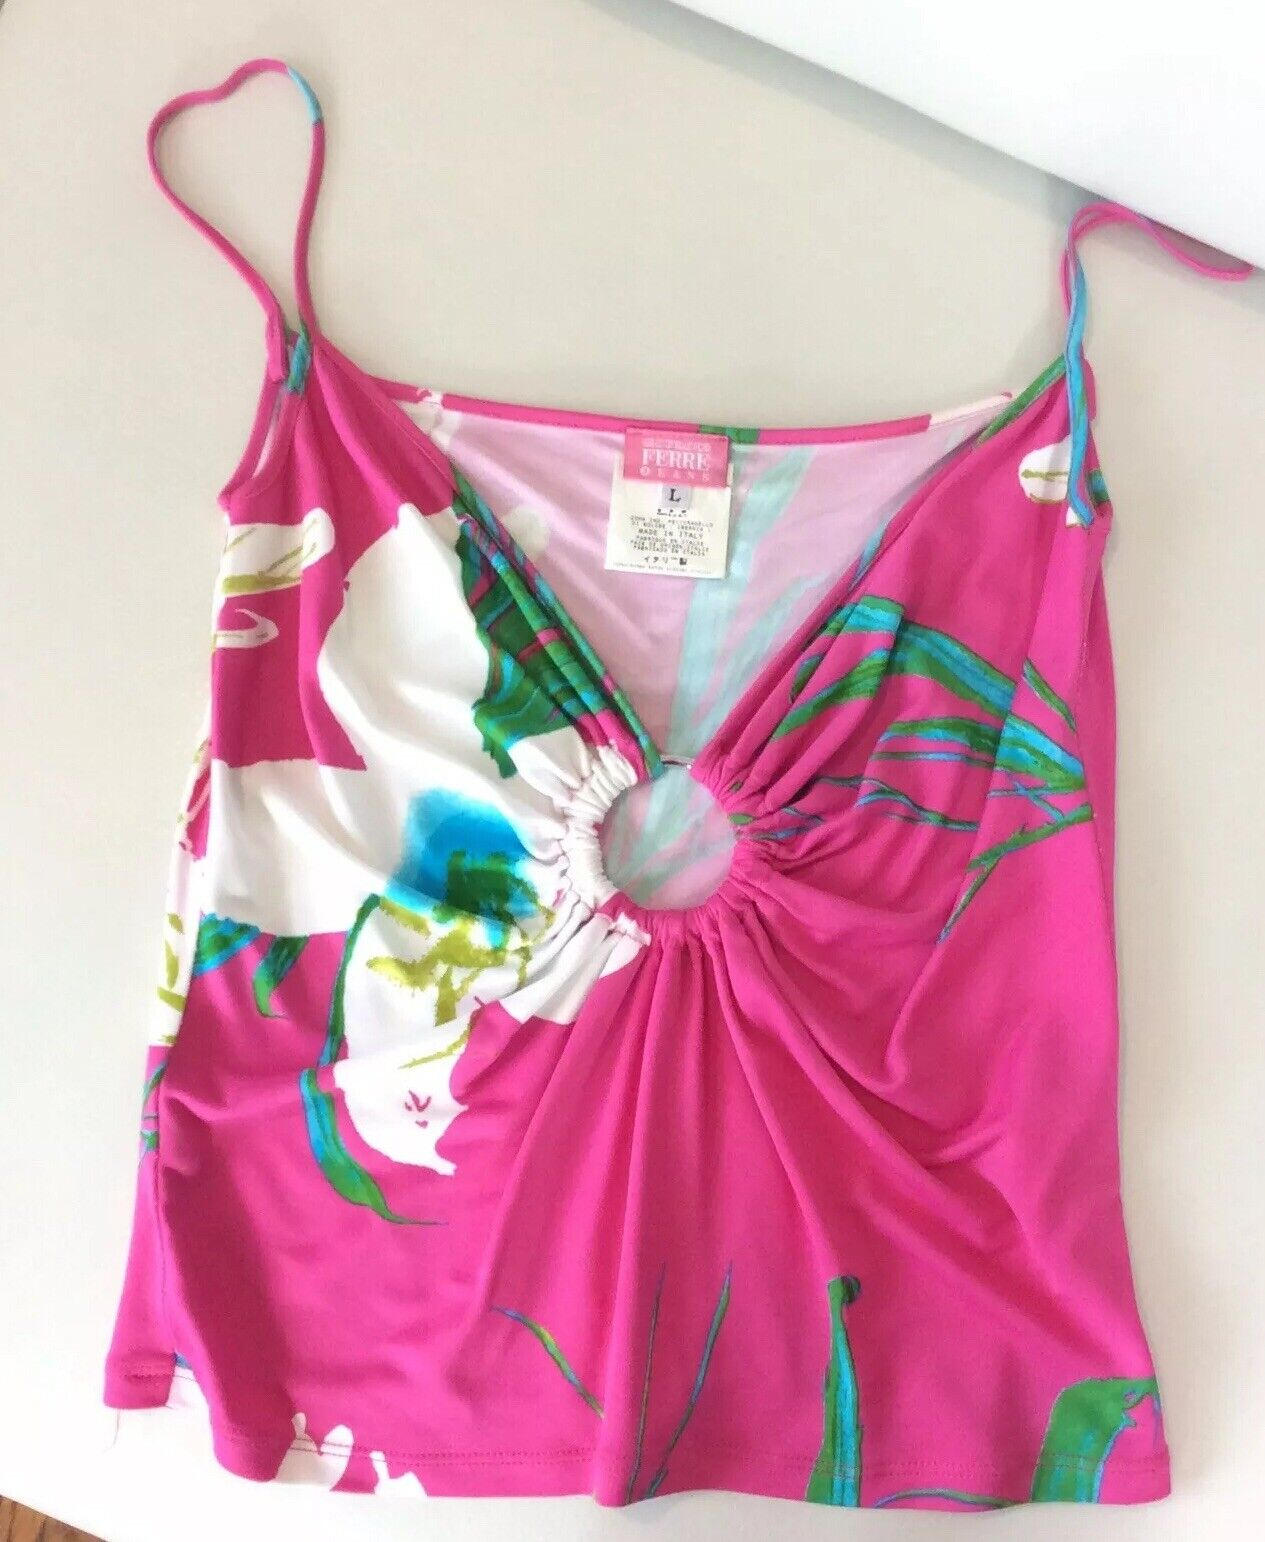 GIANFRANCO FERRE' JEANS TOP Rosa Tropical TANK Large MADE IN ITALY Vintage